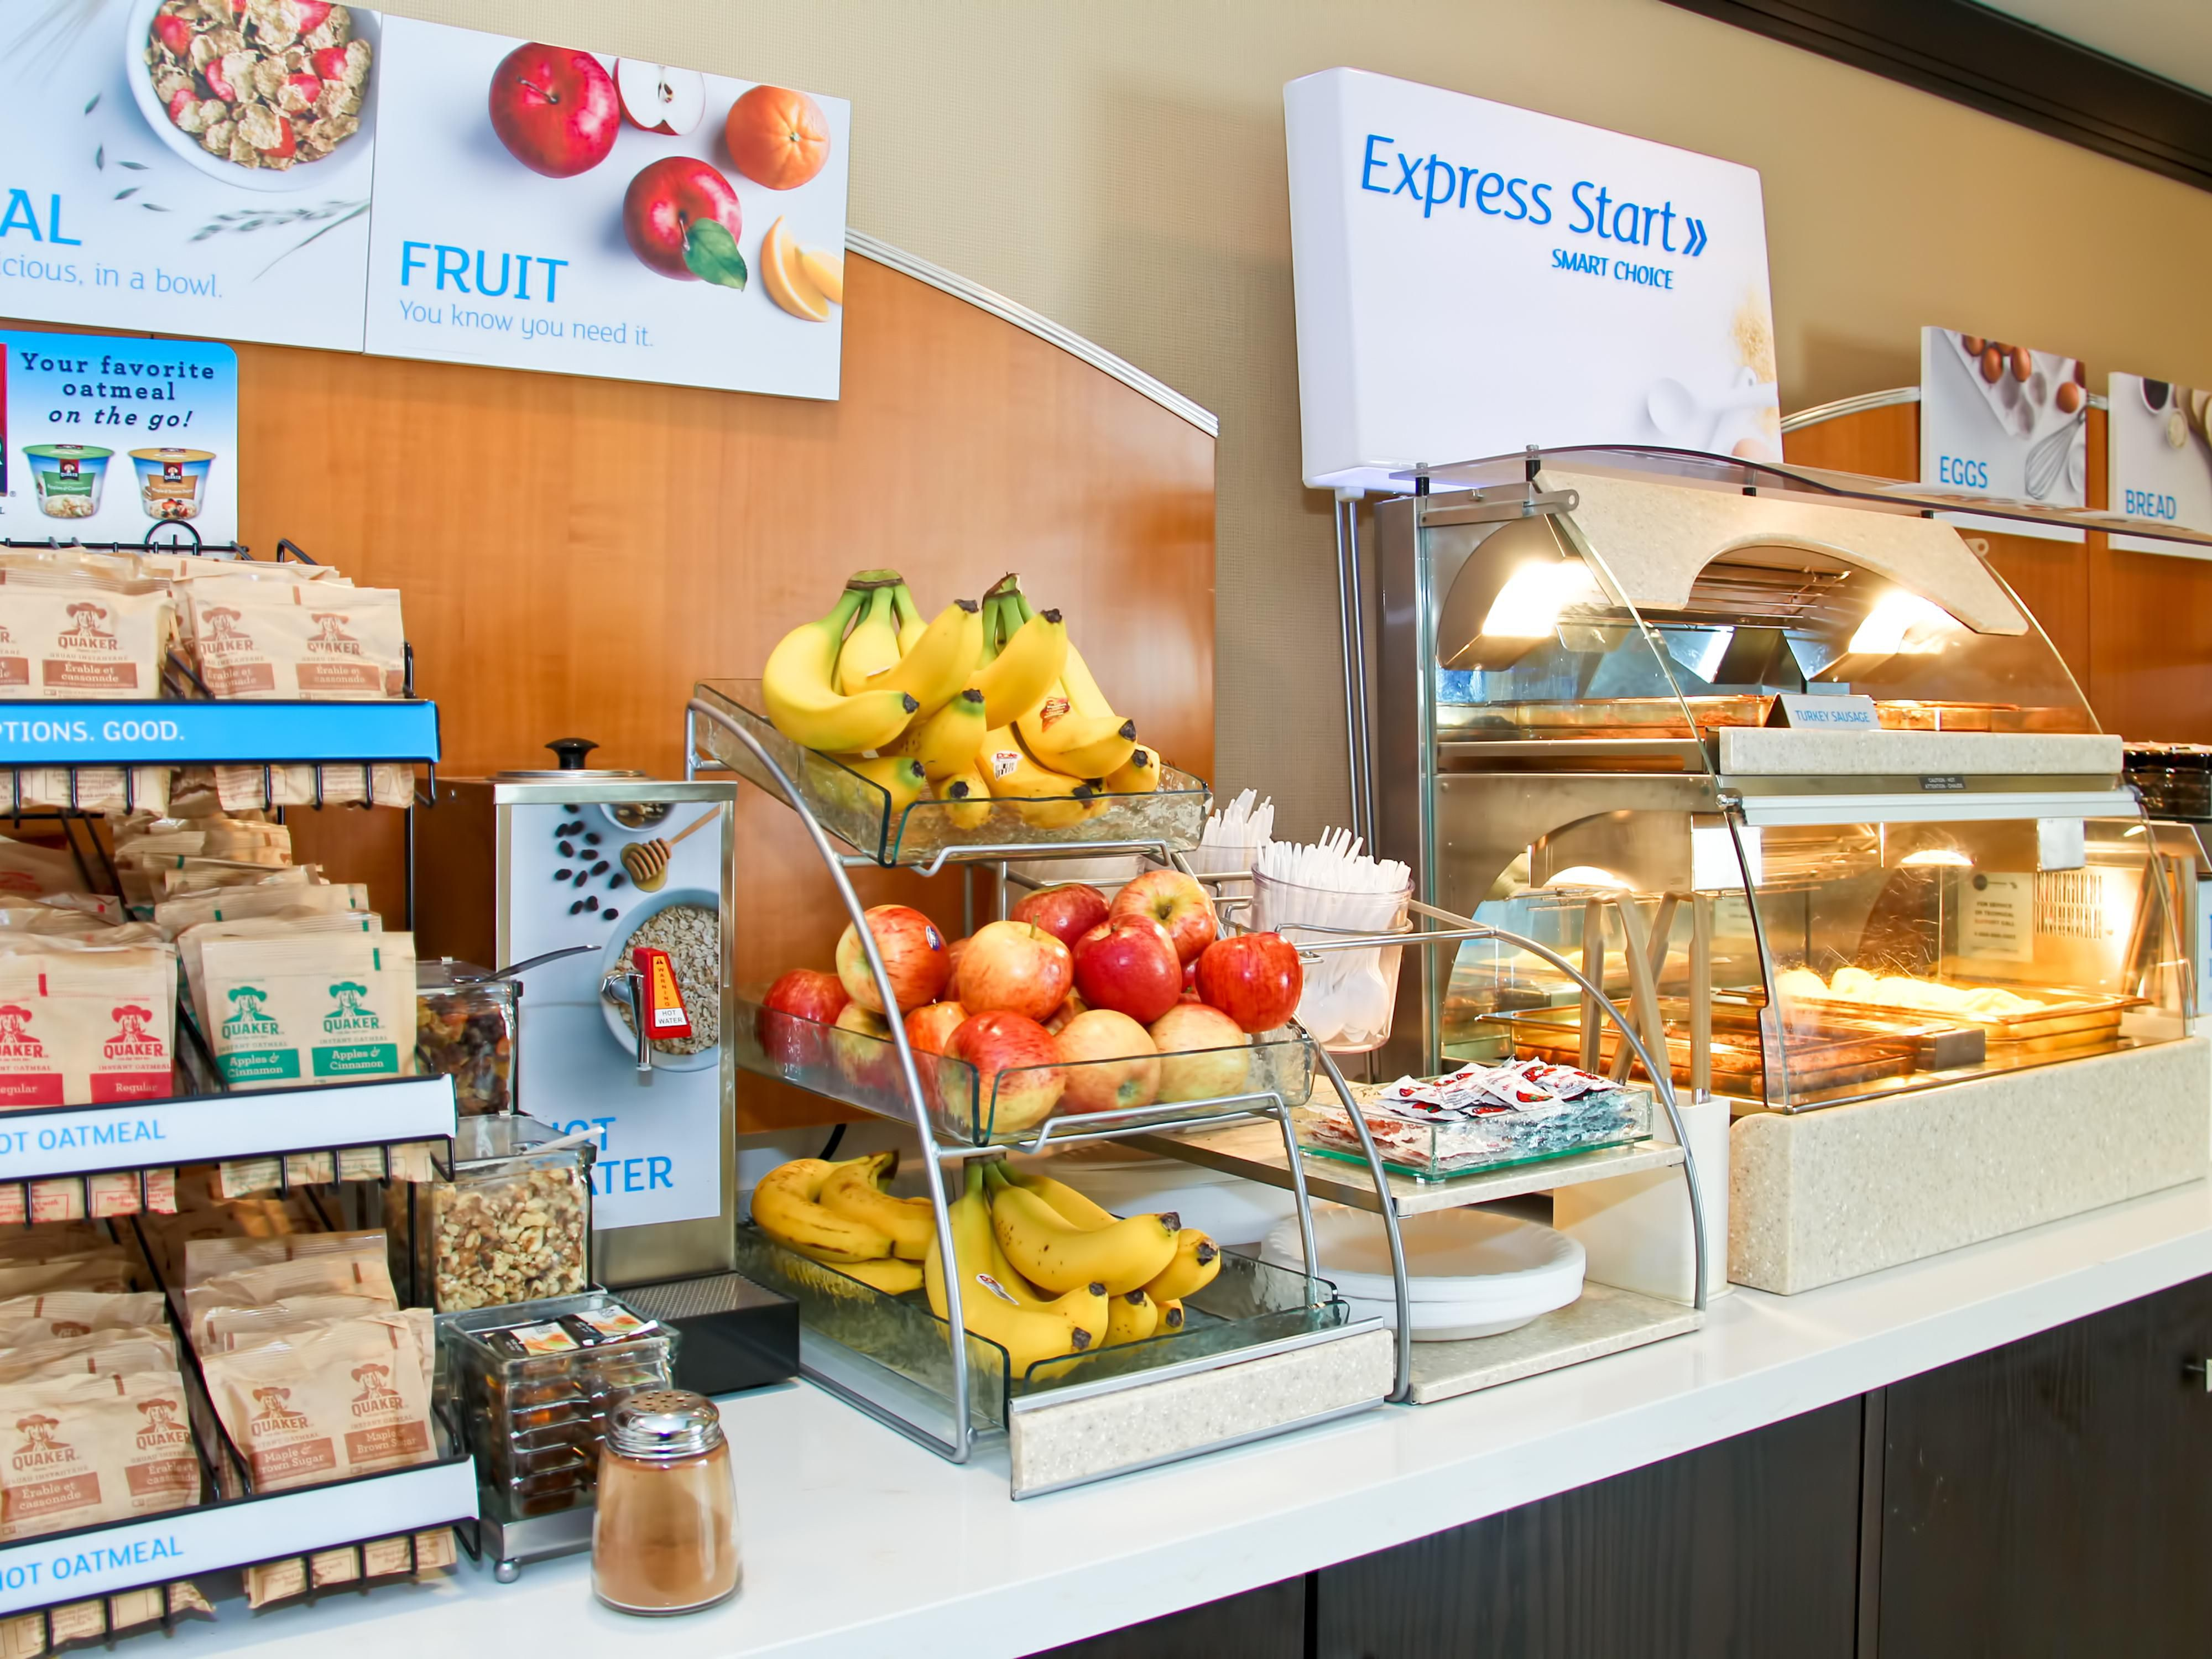 Our Complimentary Hot Buffet Breakfast is Served Daily from 6-10am